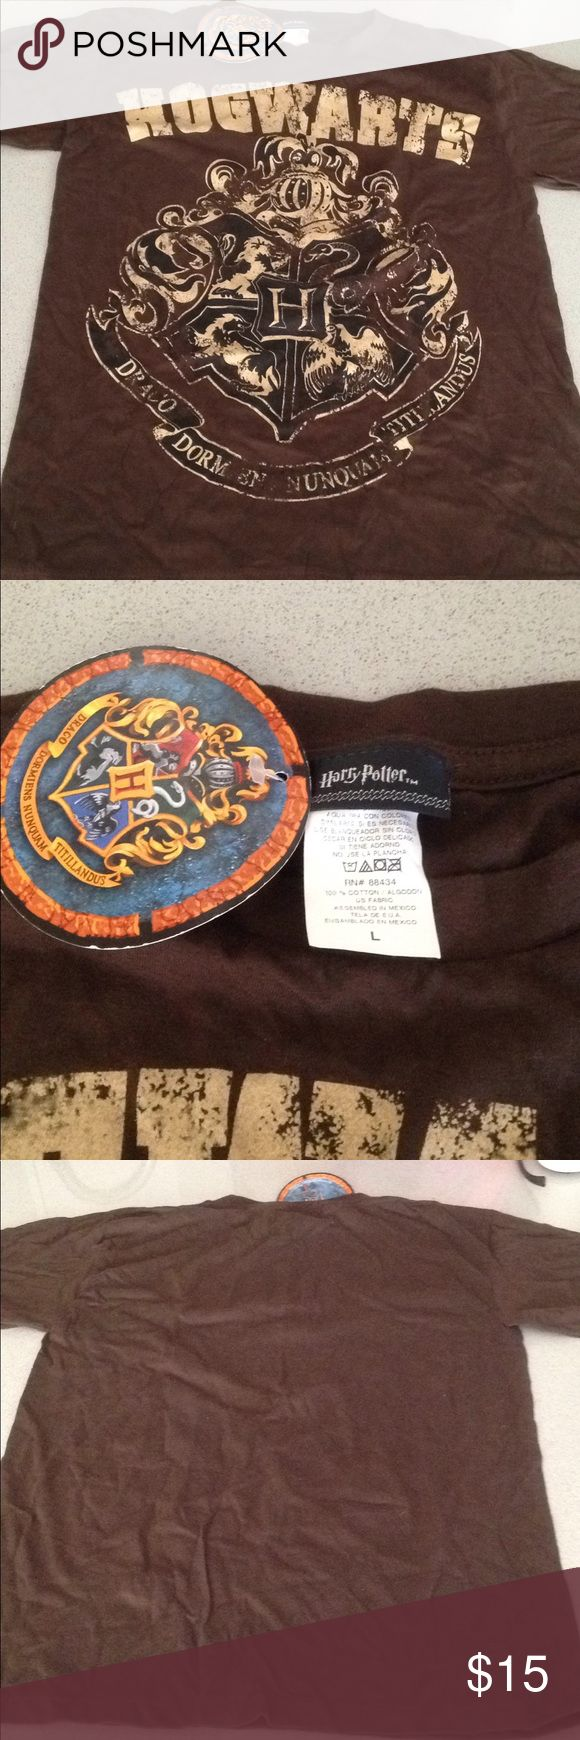 NWT Harry Potter Hogwarts shirt! Youth L/Wm S Perfect for the Harry Potter fan! This brown Hogwarts shirt still has the tag on it!  It is a youth large but could fit a small in women's.  Stored in a smoke free home! Tops Tees - Short Sleeve